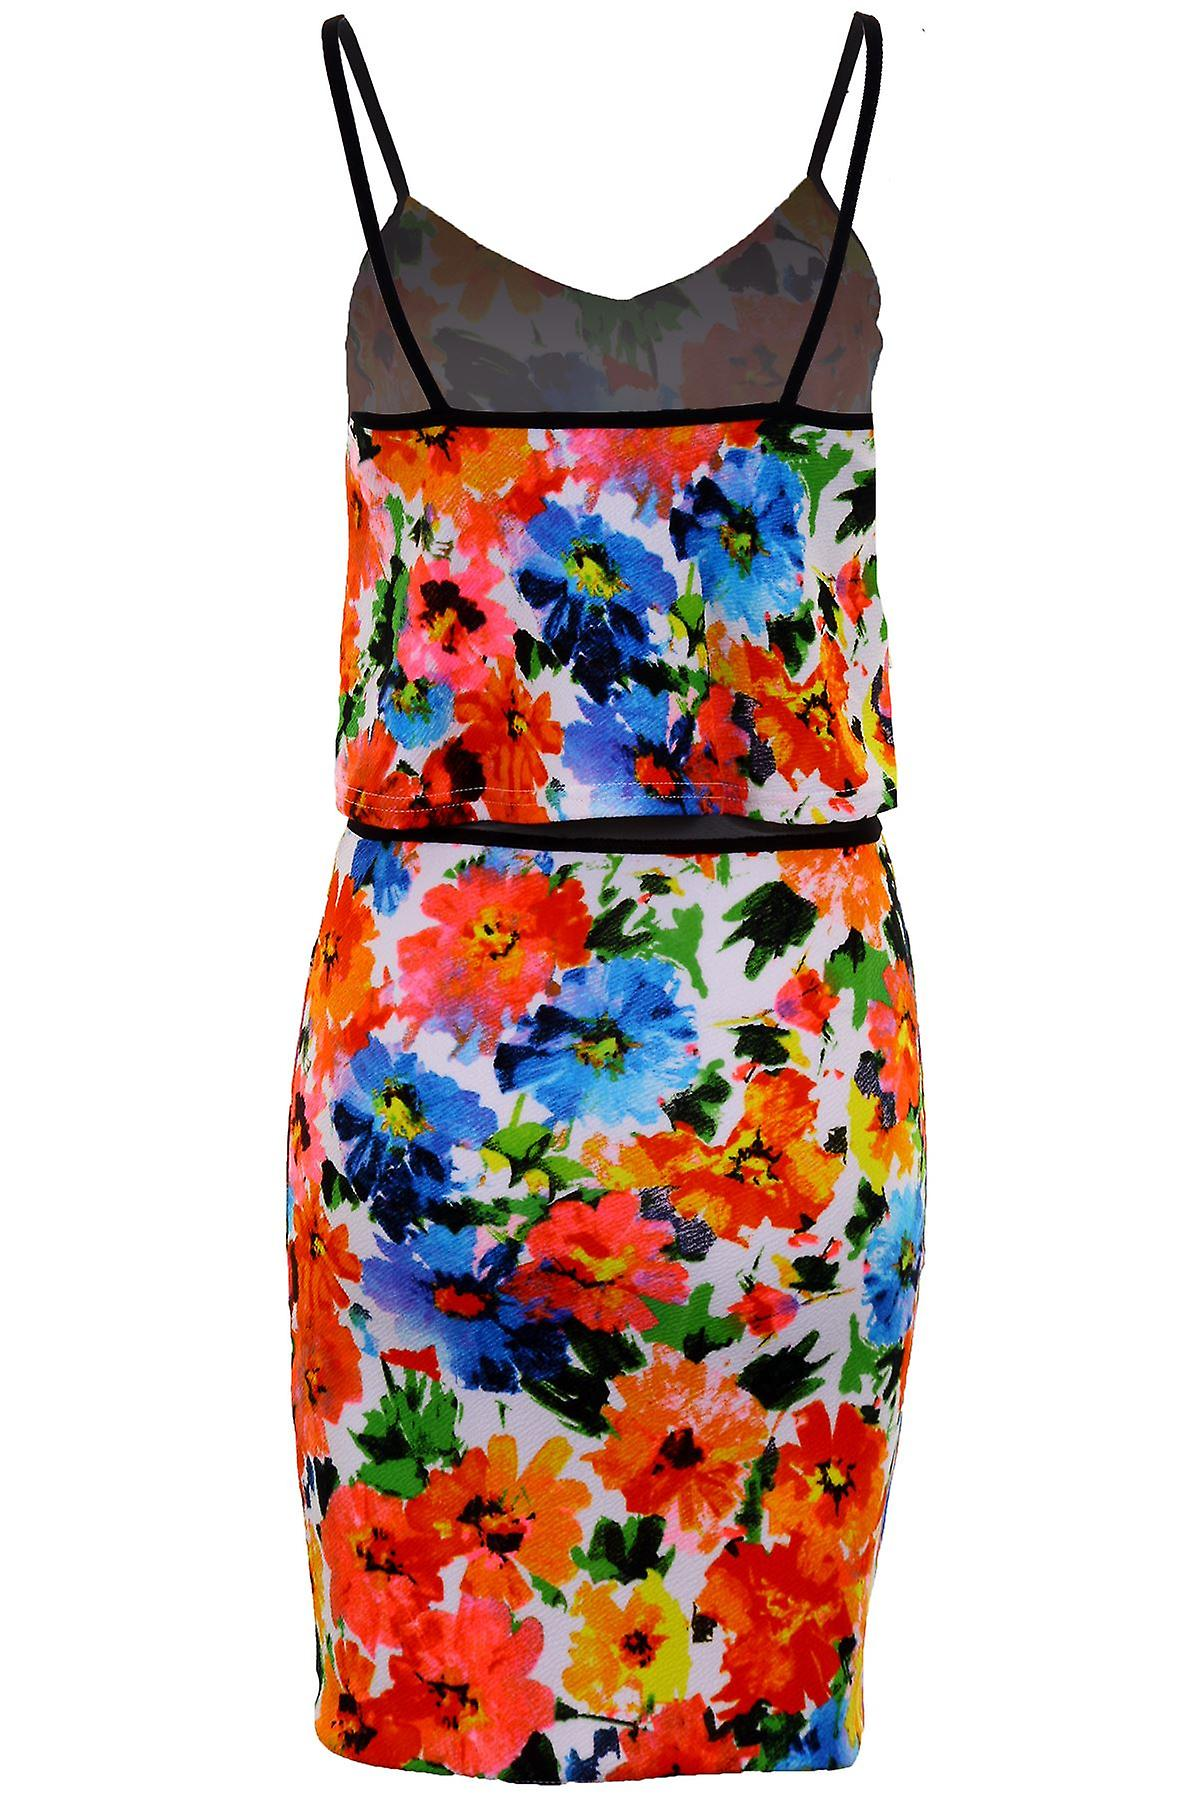 Ladies Strappy Textured Mulitcolour Floral Mesh Insert Frill Women's Bodycon Dress